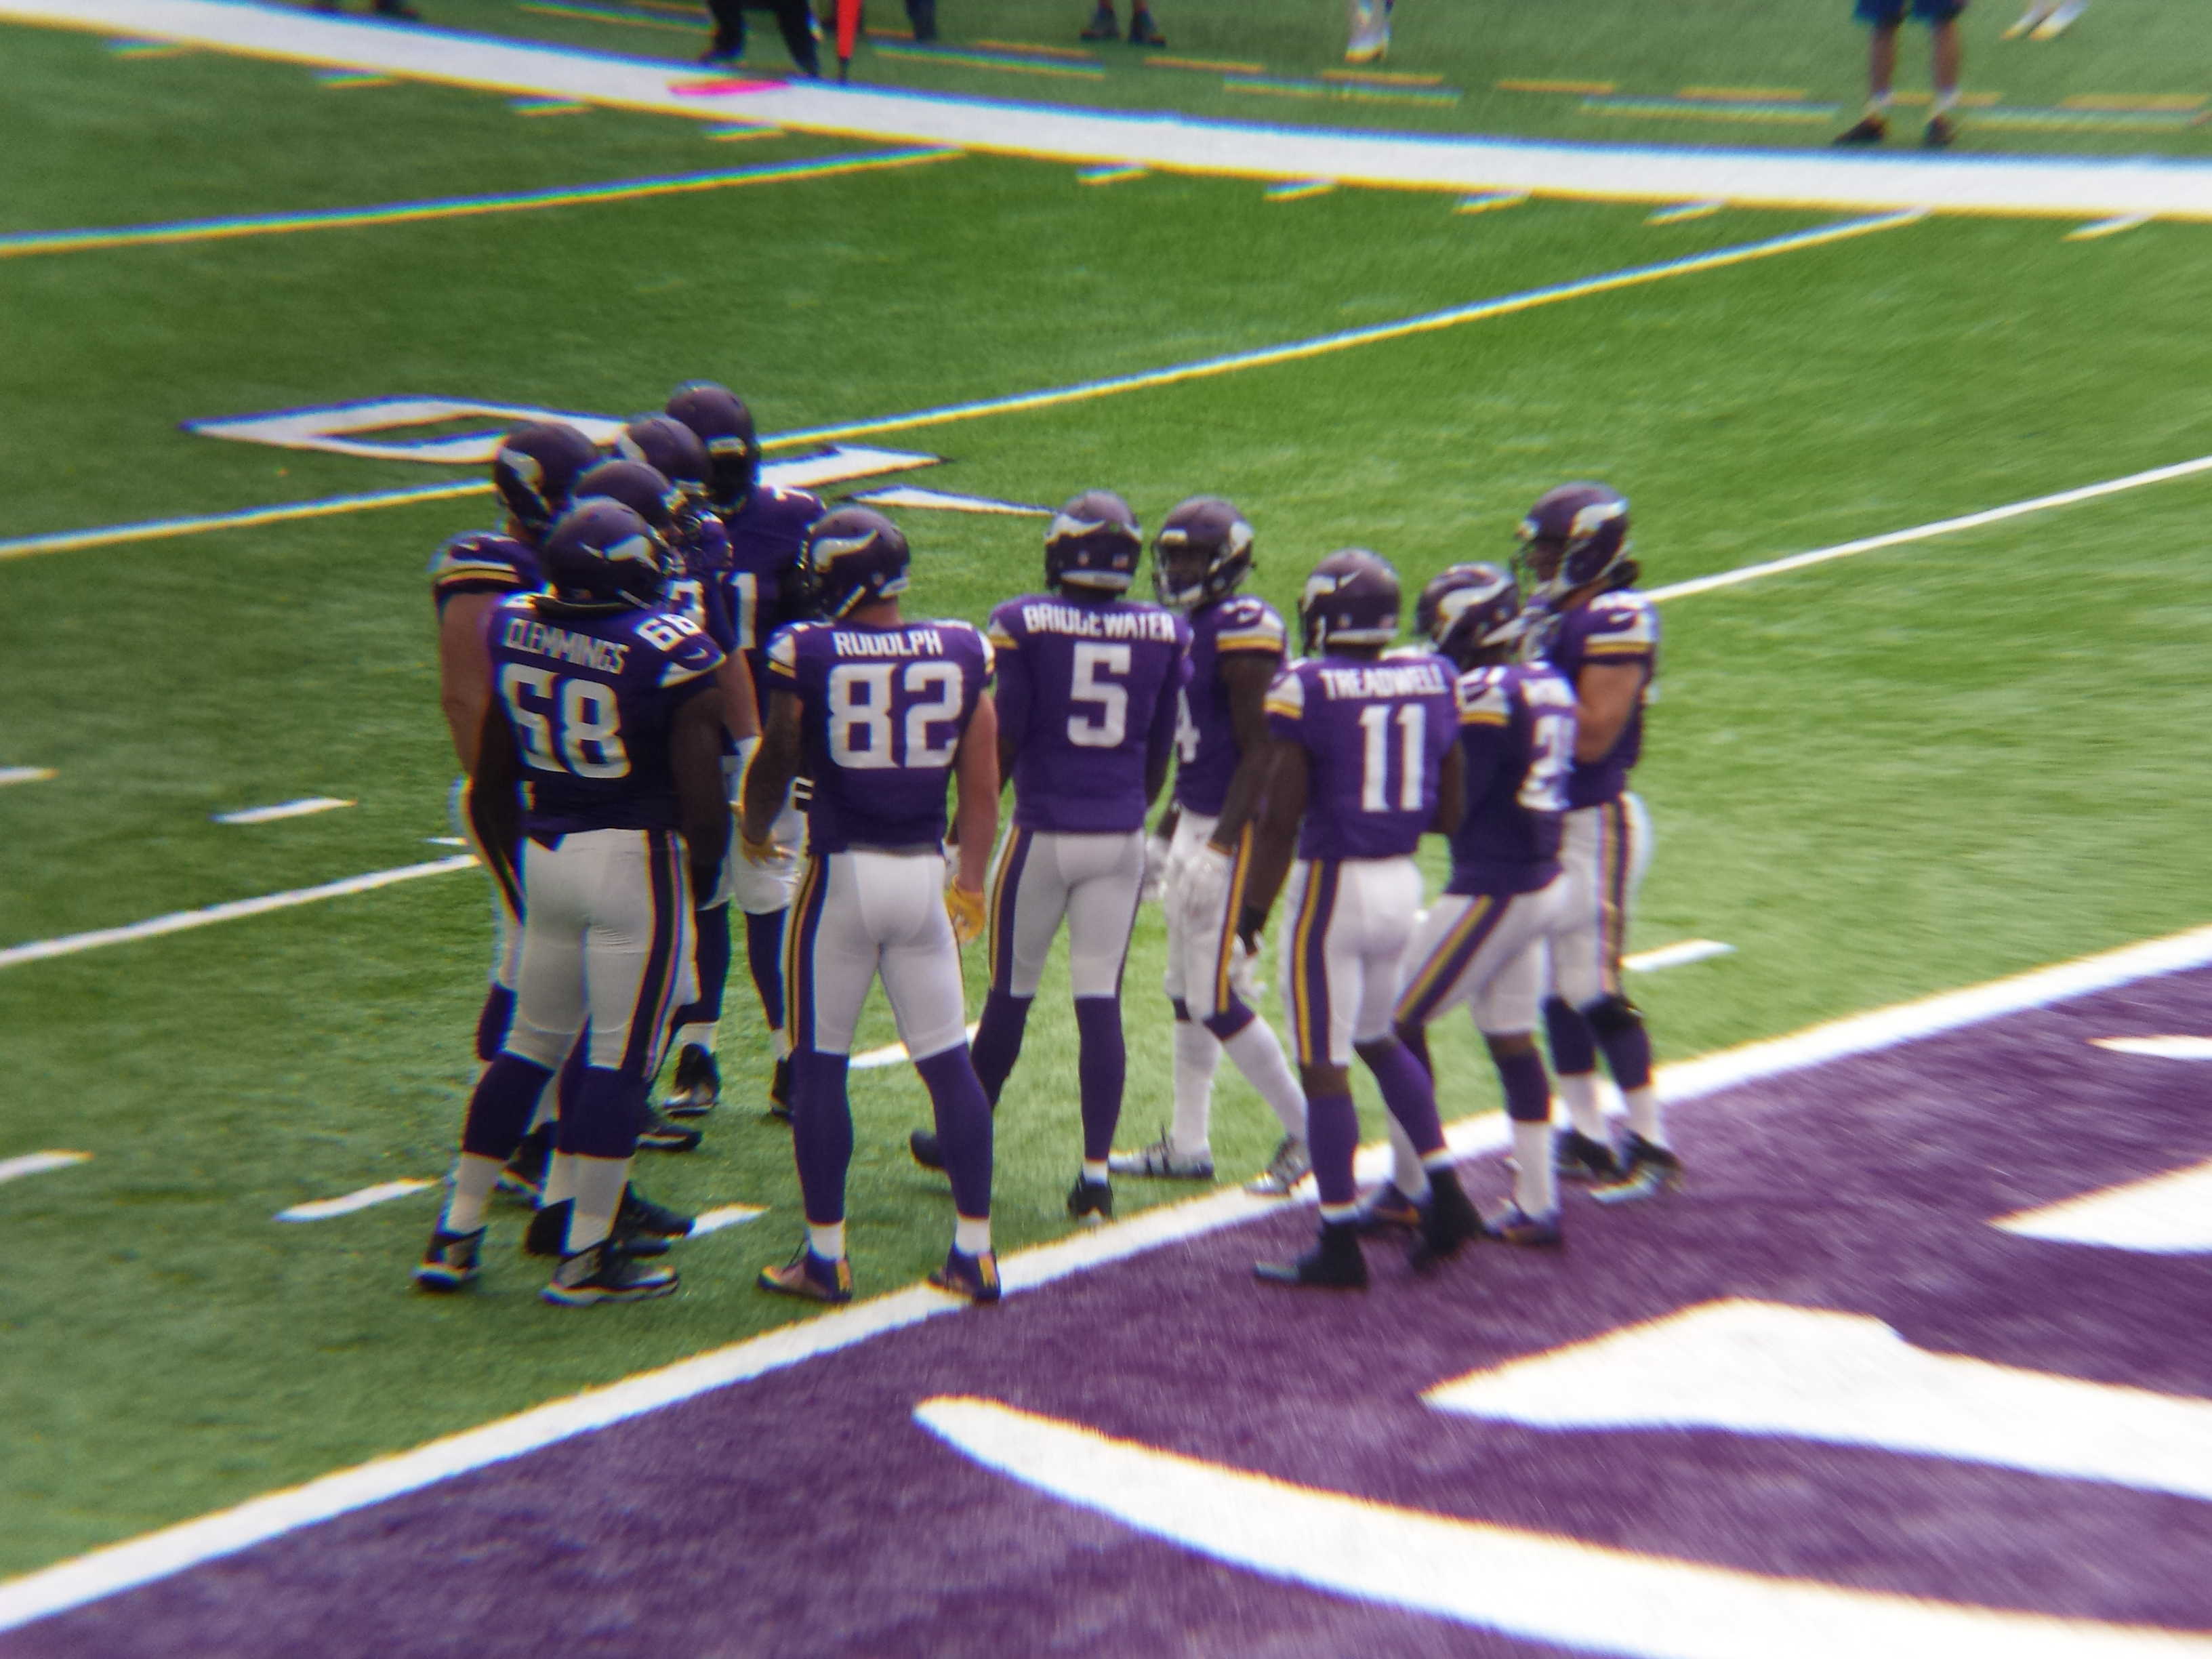 Minnesota Vikings U.S. Bank Stadium First Game - Huddle